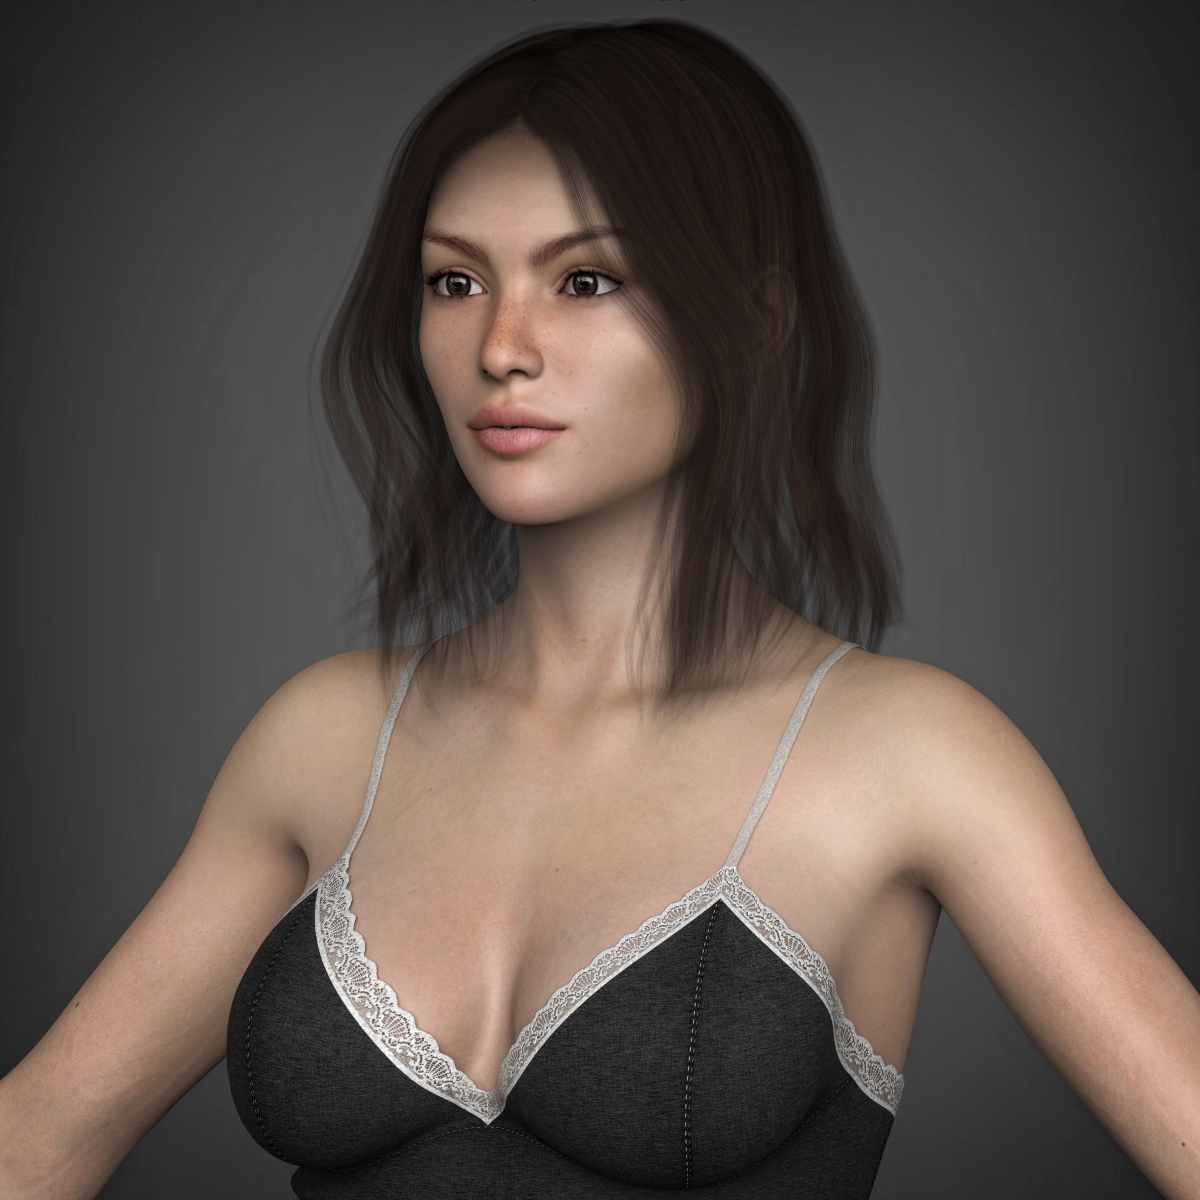 highend 3d - 3d models > characters > people > woman compatible with